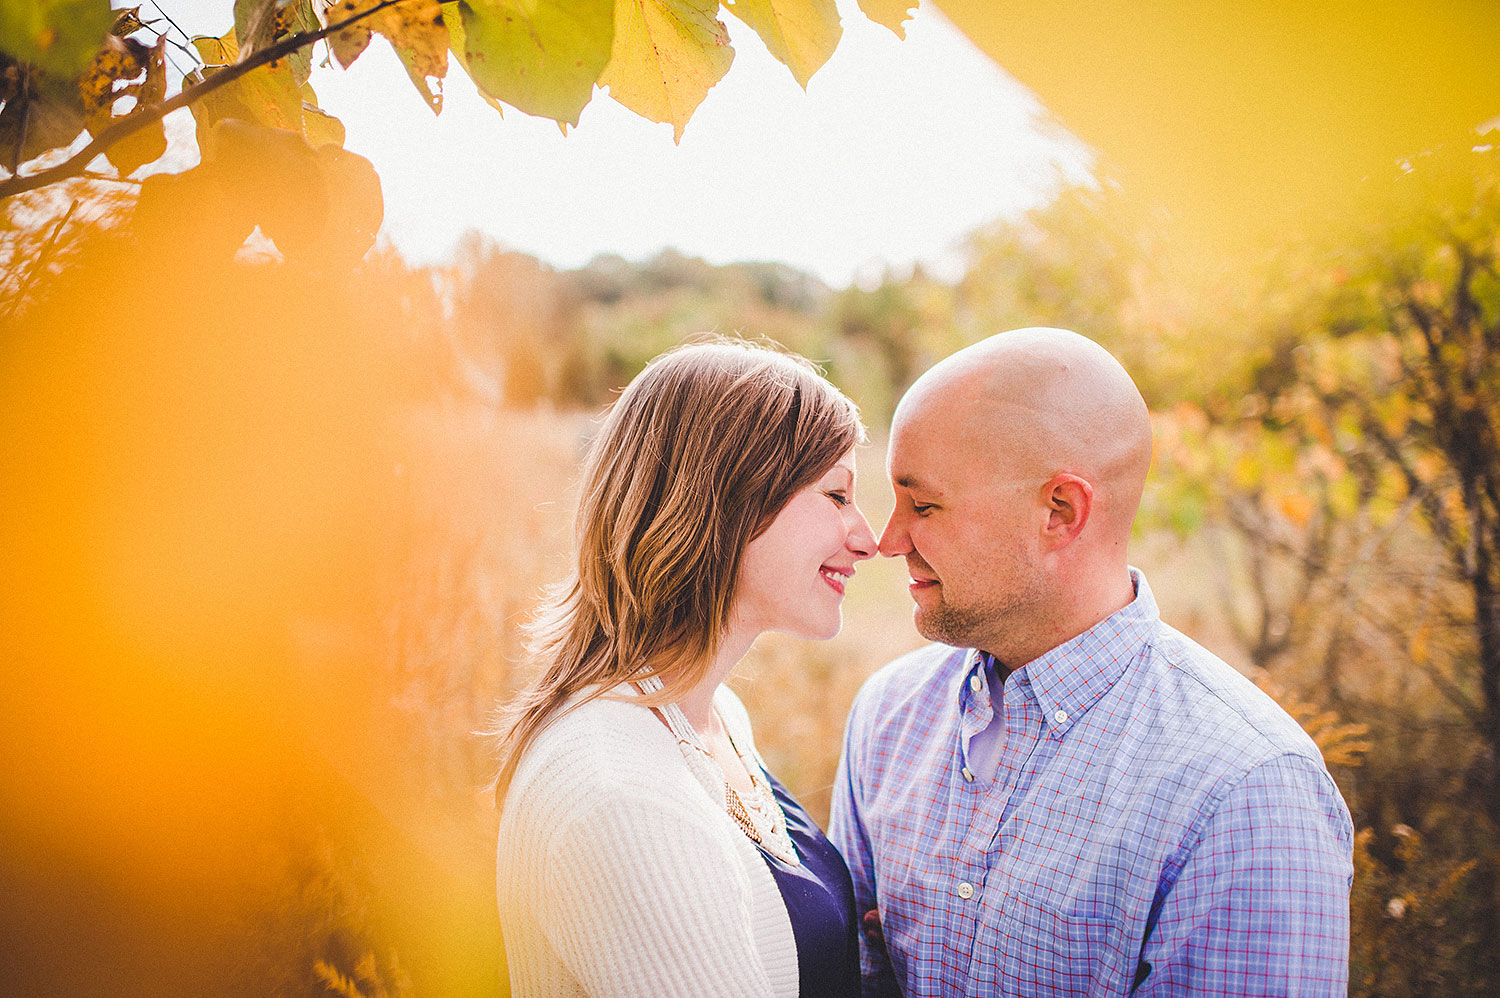 pat-robinson-photography-wilmington-engagement-session-7-2.jpg